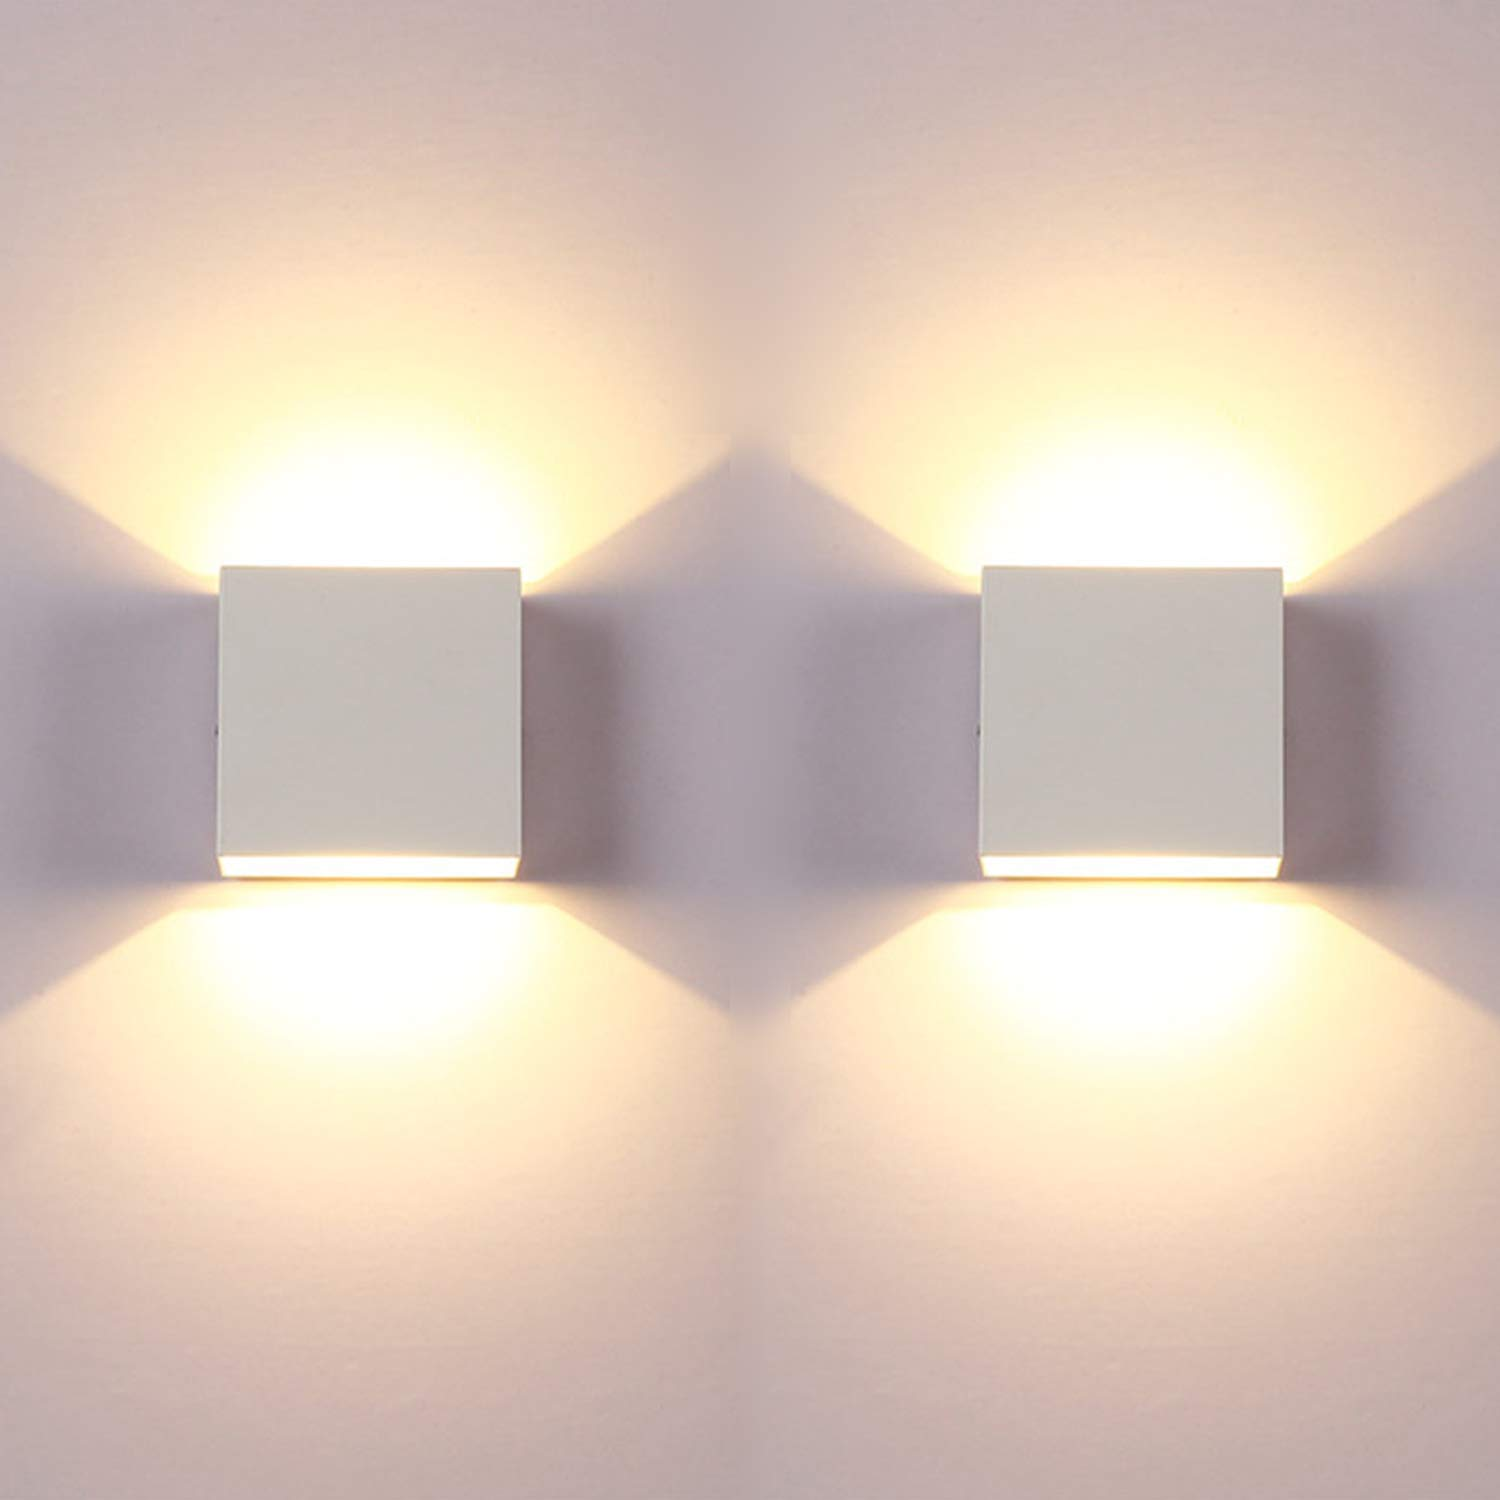 Led Wall Light Bedroom 2 Pcs Indoor Modern Wall Wash Lights Up And Down Wall Lamp With Long Life Energy Saving Led Suitable For Living Room Bedroom And Hallway Warm White Buy Online In Aruba At Aruba Desertcart Com